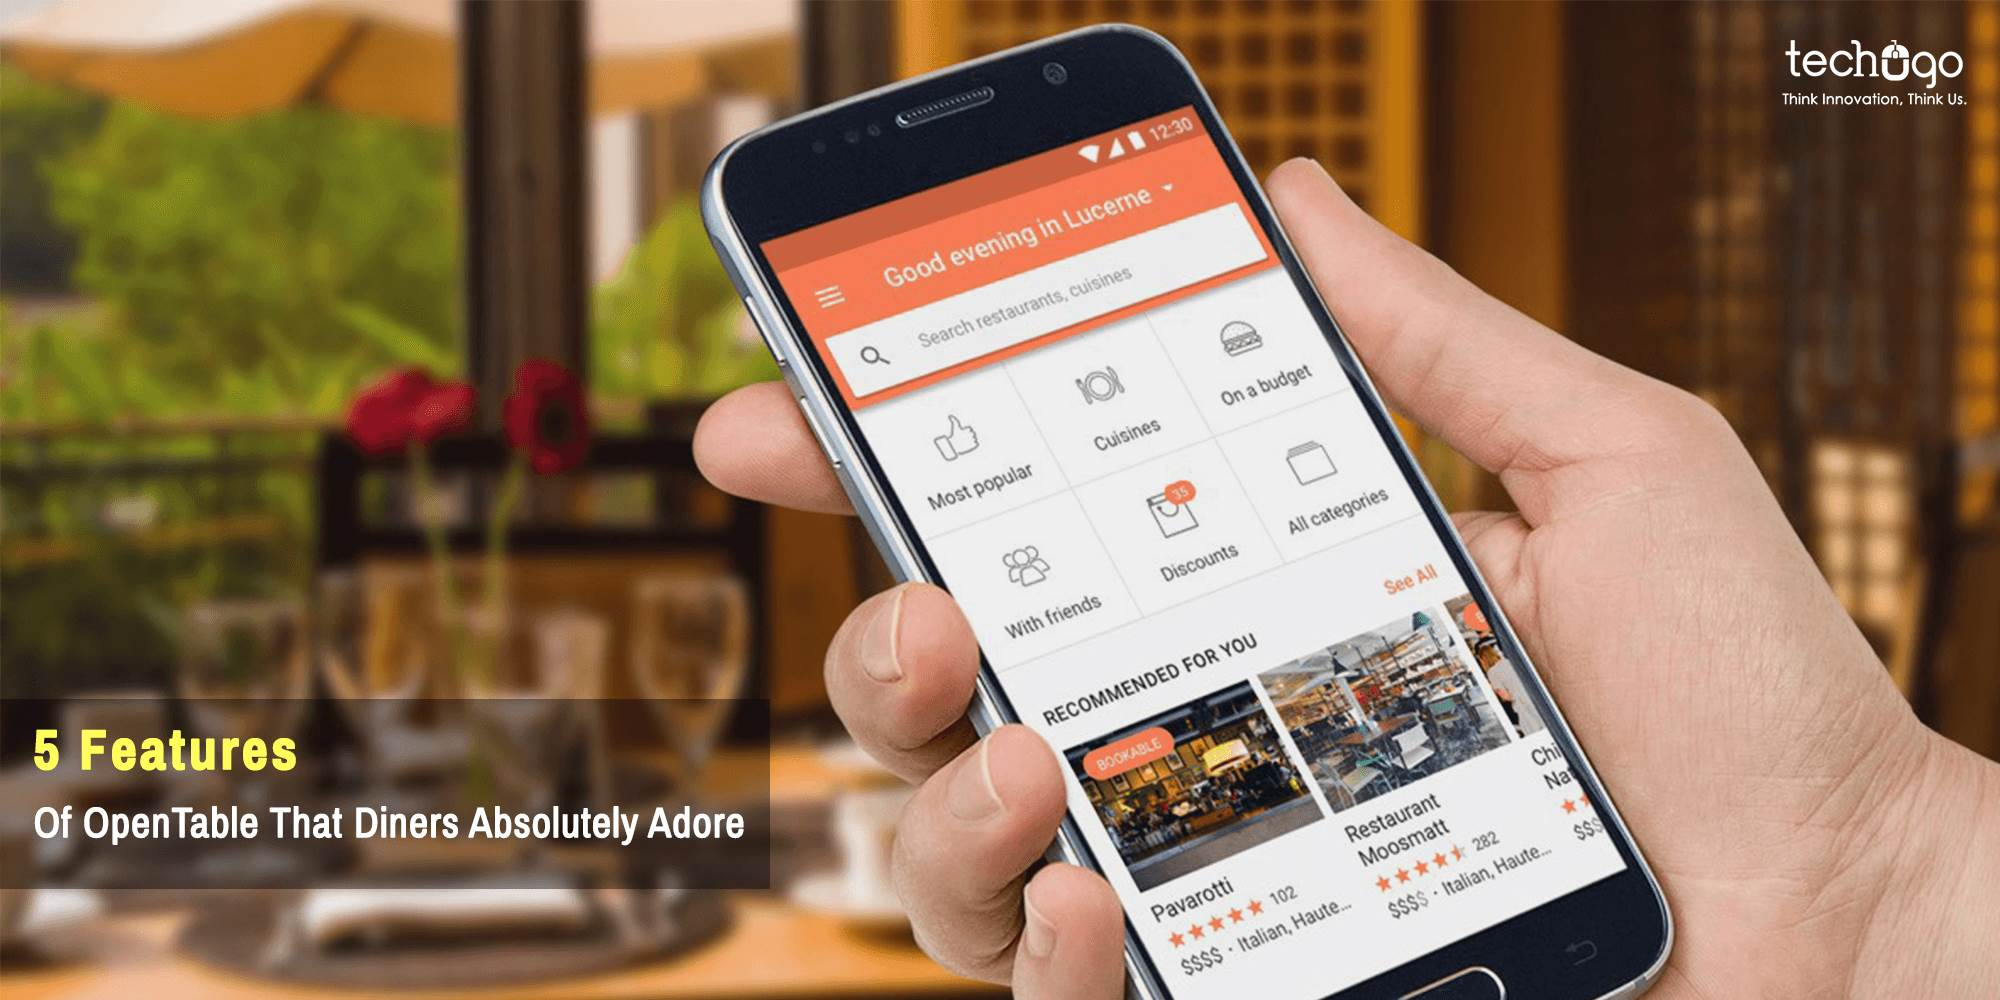 5 Features Of OpenTable That Diners Absolutely Adore